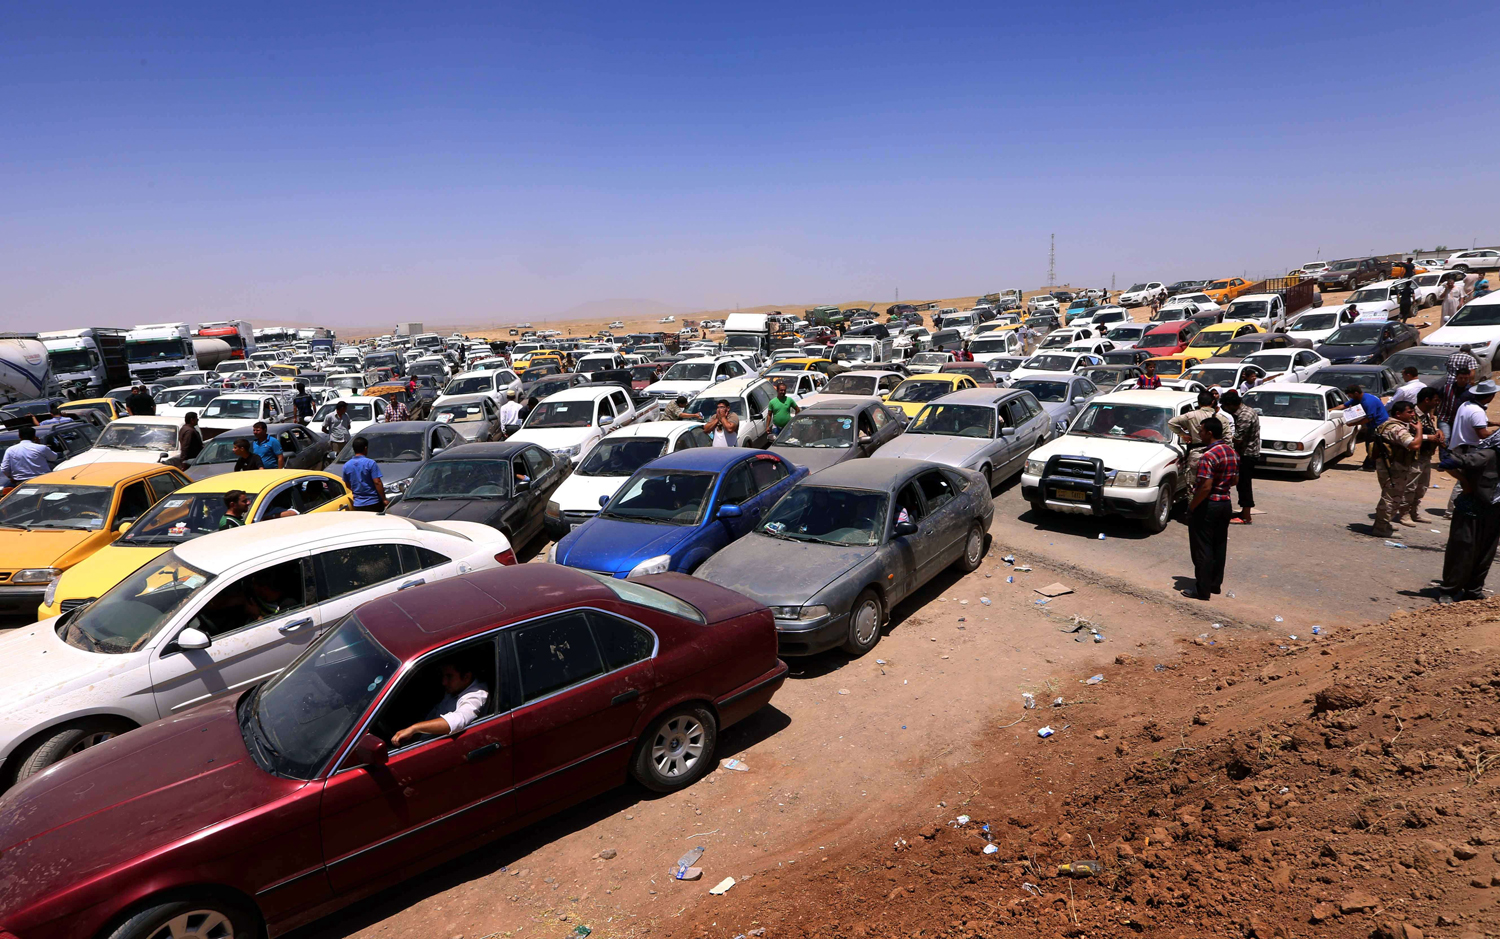 Iraqis fleeing violence in Nineveh province wait in their vehicles at a Kurdish checkpoint in Aski Kalak, 25 miles west of Arbil, the capital of the autonomous Kurdish region of northern Iraq, on June 10, 2014.